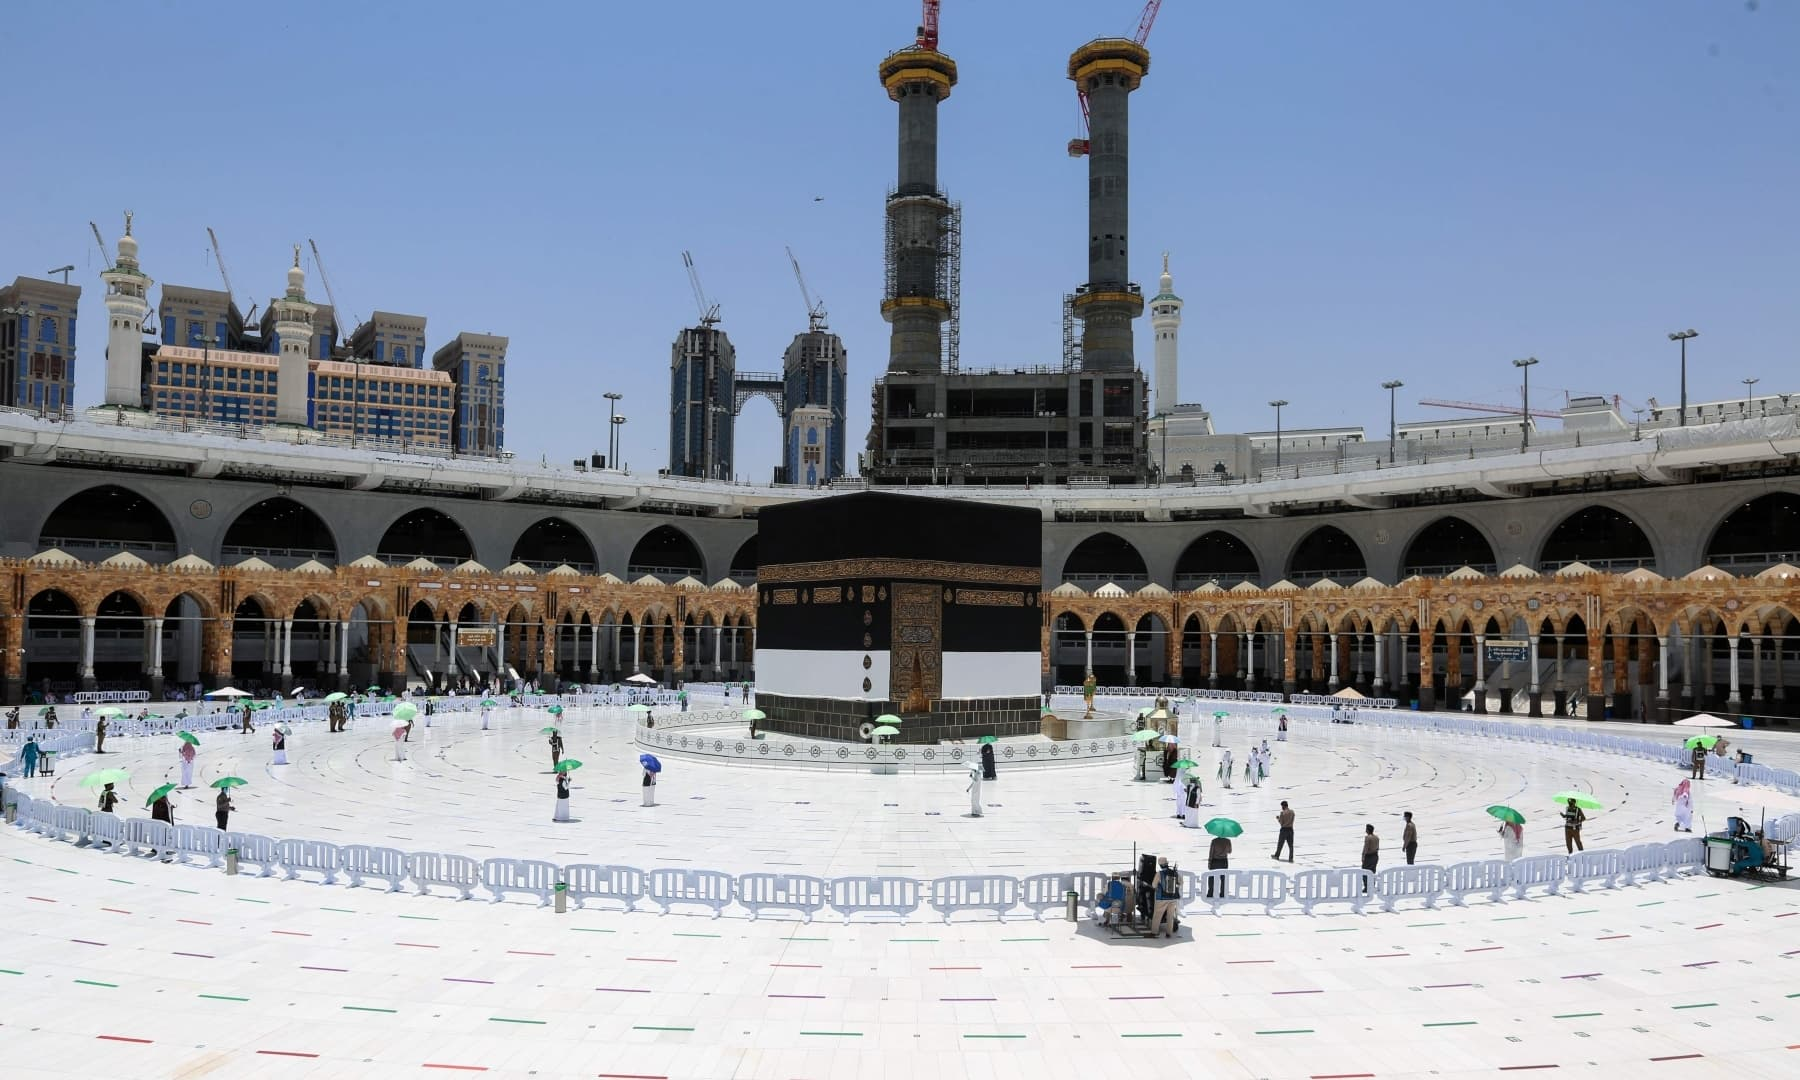 Members of Saudi security forces and staff work around the Kaaba at the Grand Mosque in the holy city of Makkah, Saudi Arabia, July 16, 2021. — AFP